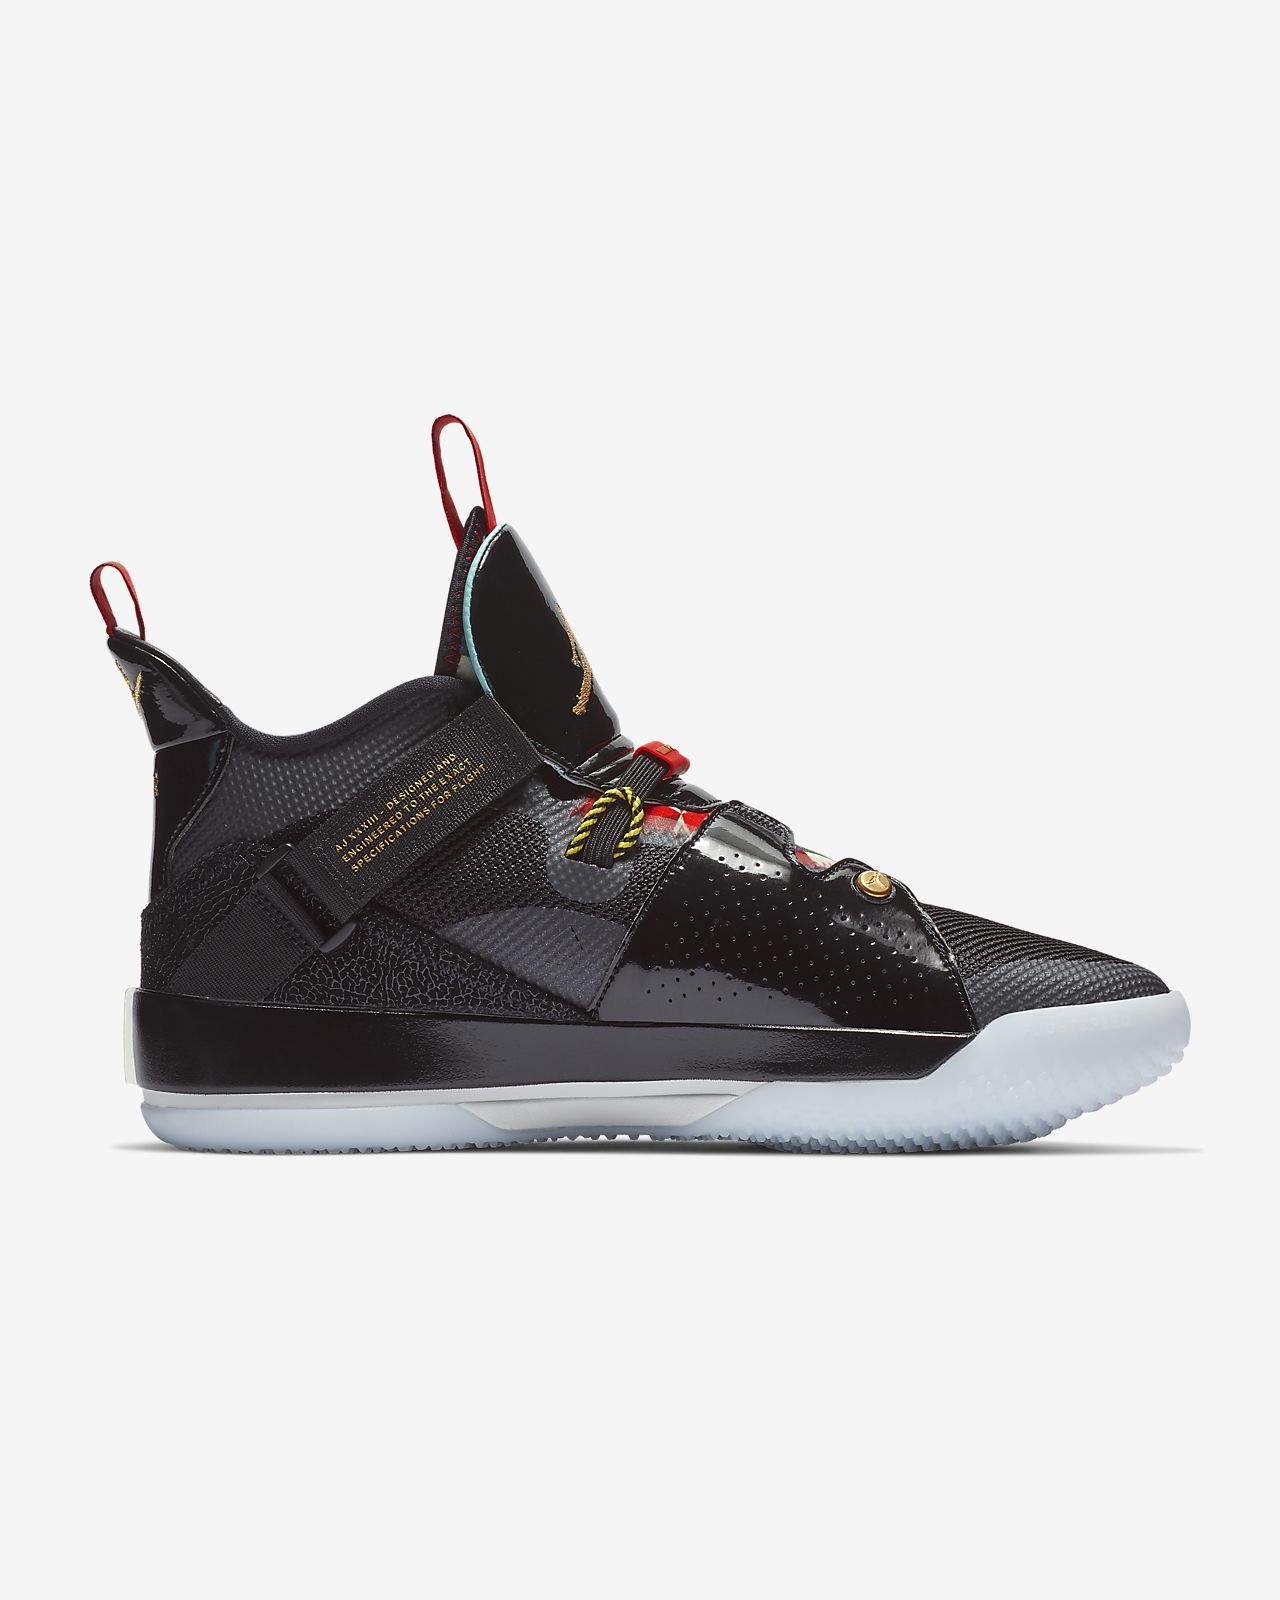 9edb450c1e99 Low Resolution Air Jordan XXXIII Basketball Shoe Air Jordan XXXIII  Basketball Shoe